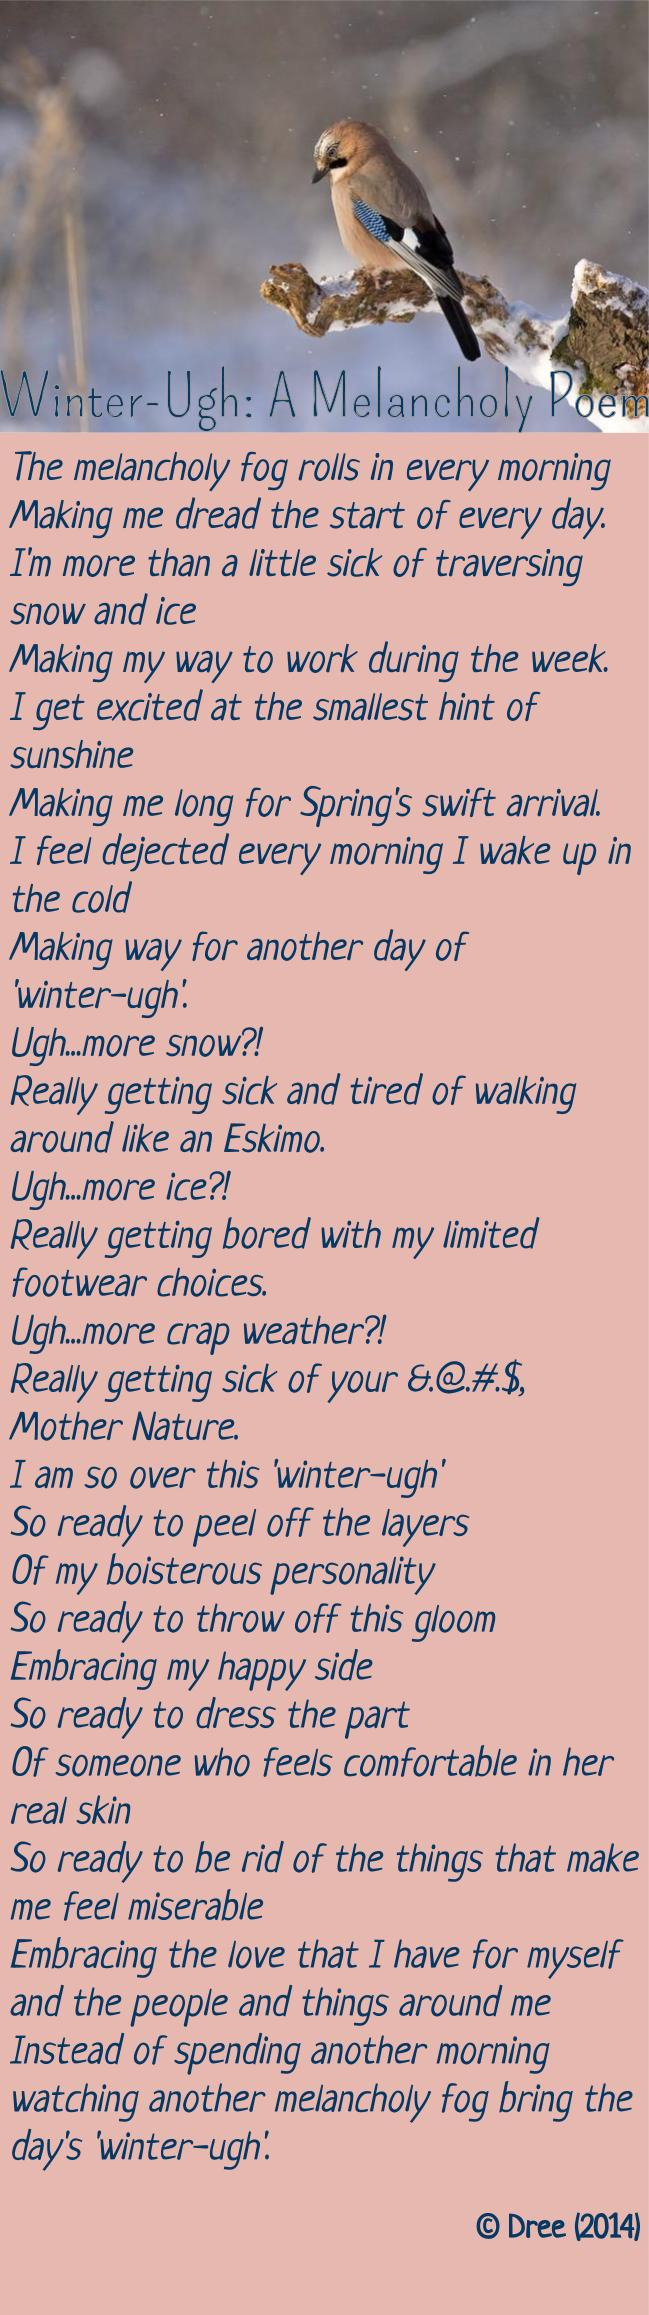 Winter-Ugh: A Melancholy Poem